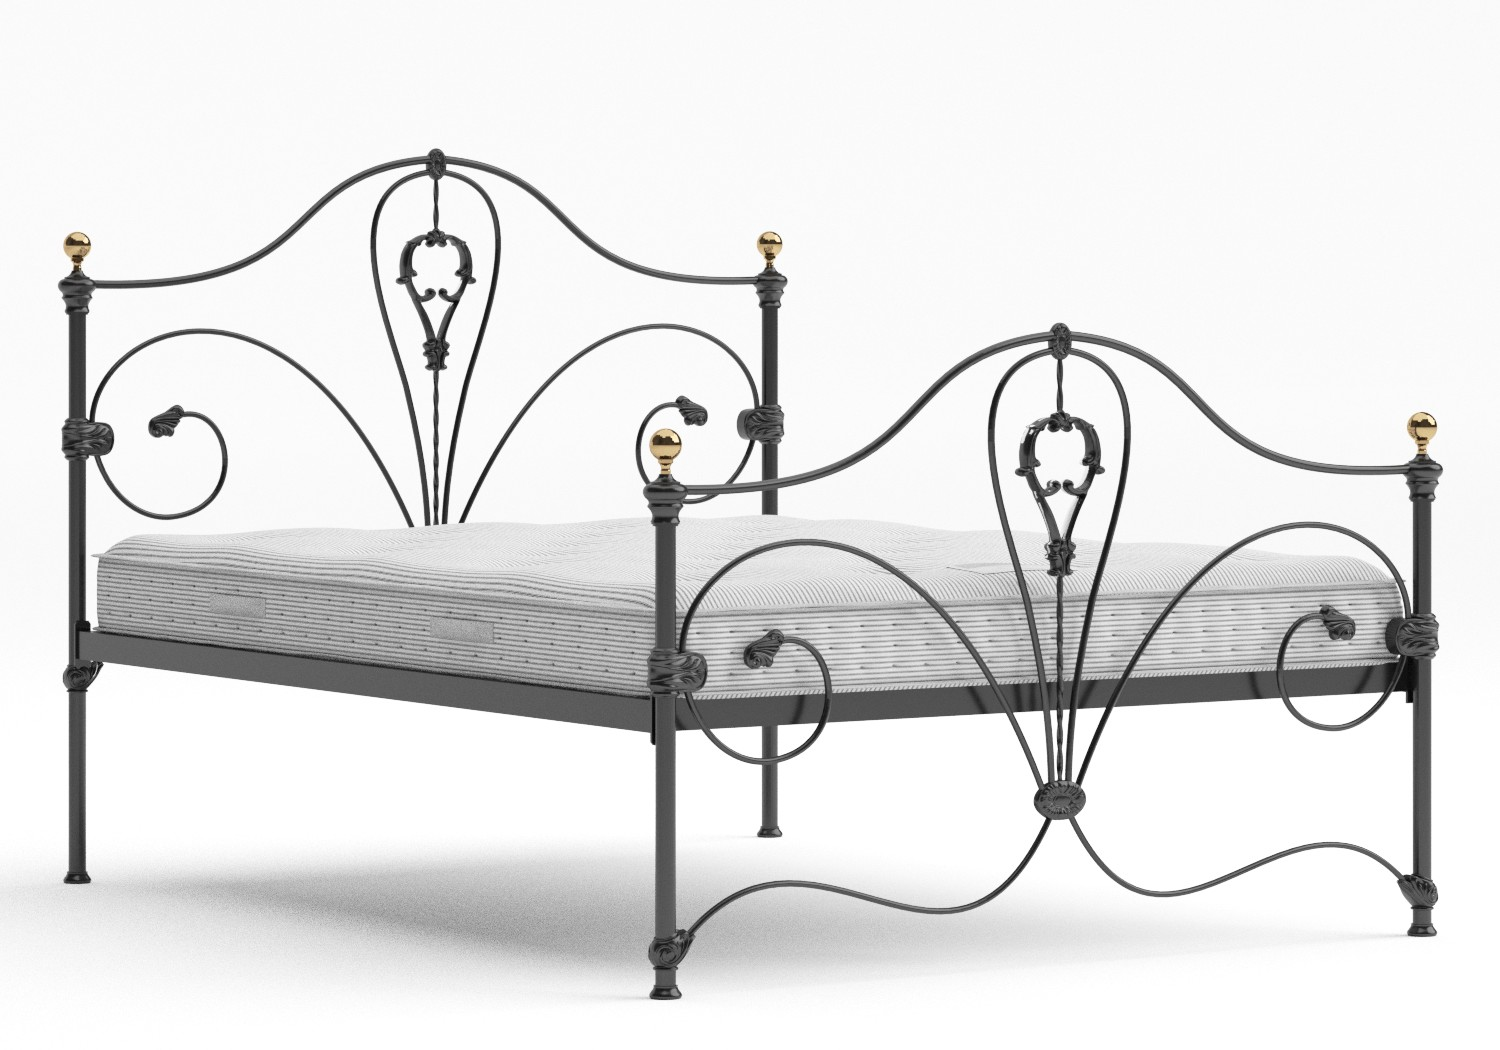 Melrose Iron/Metal Bed in Satin Black with Brass details shown with Juno 1 mattress